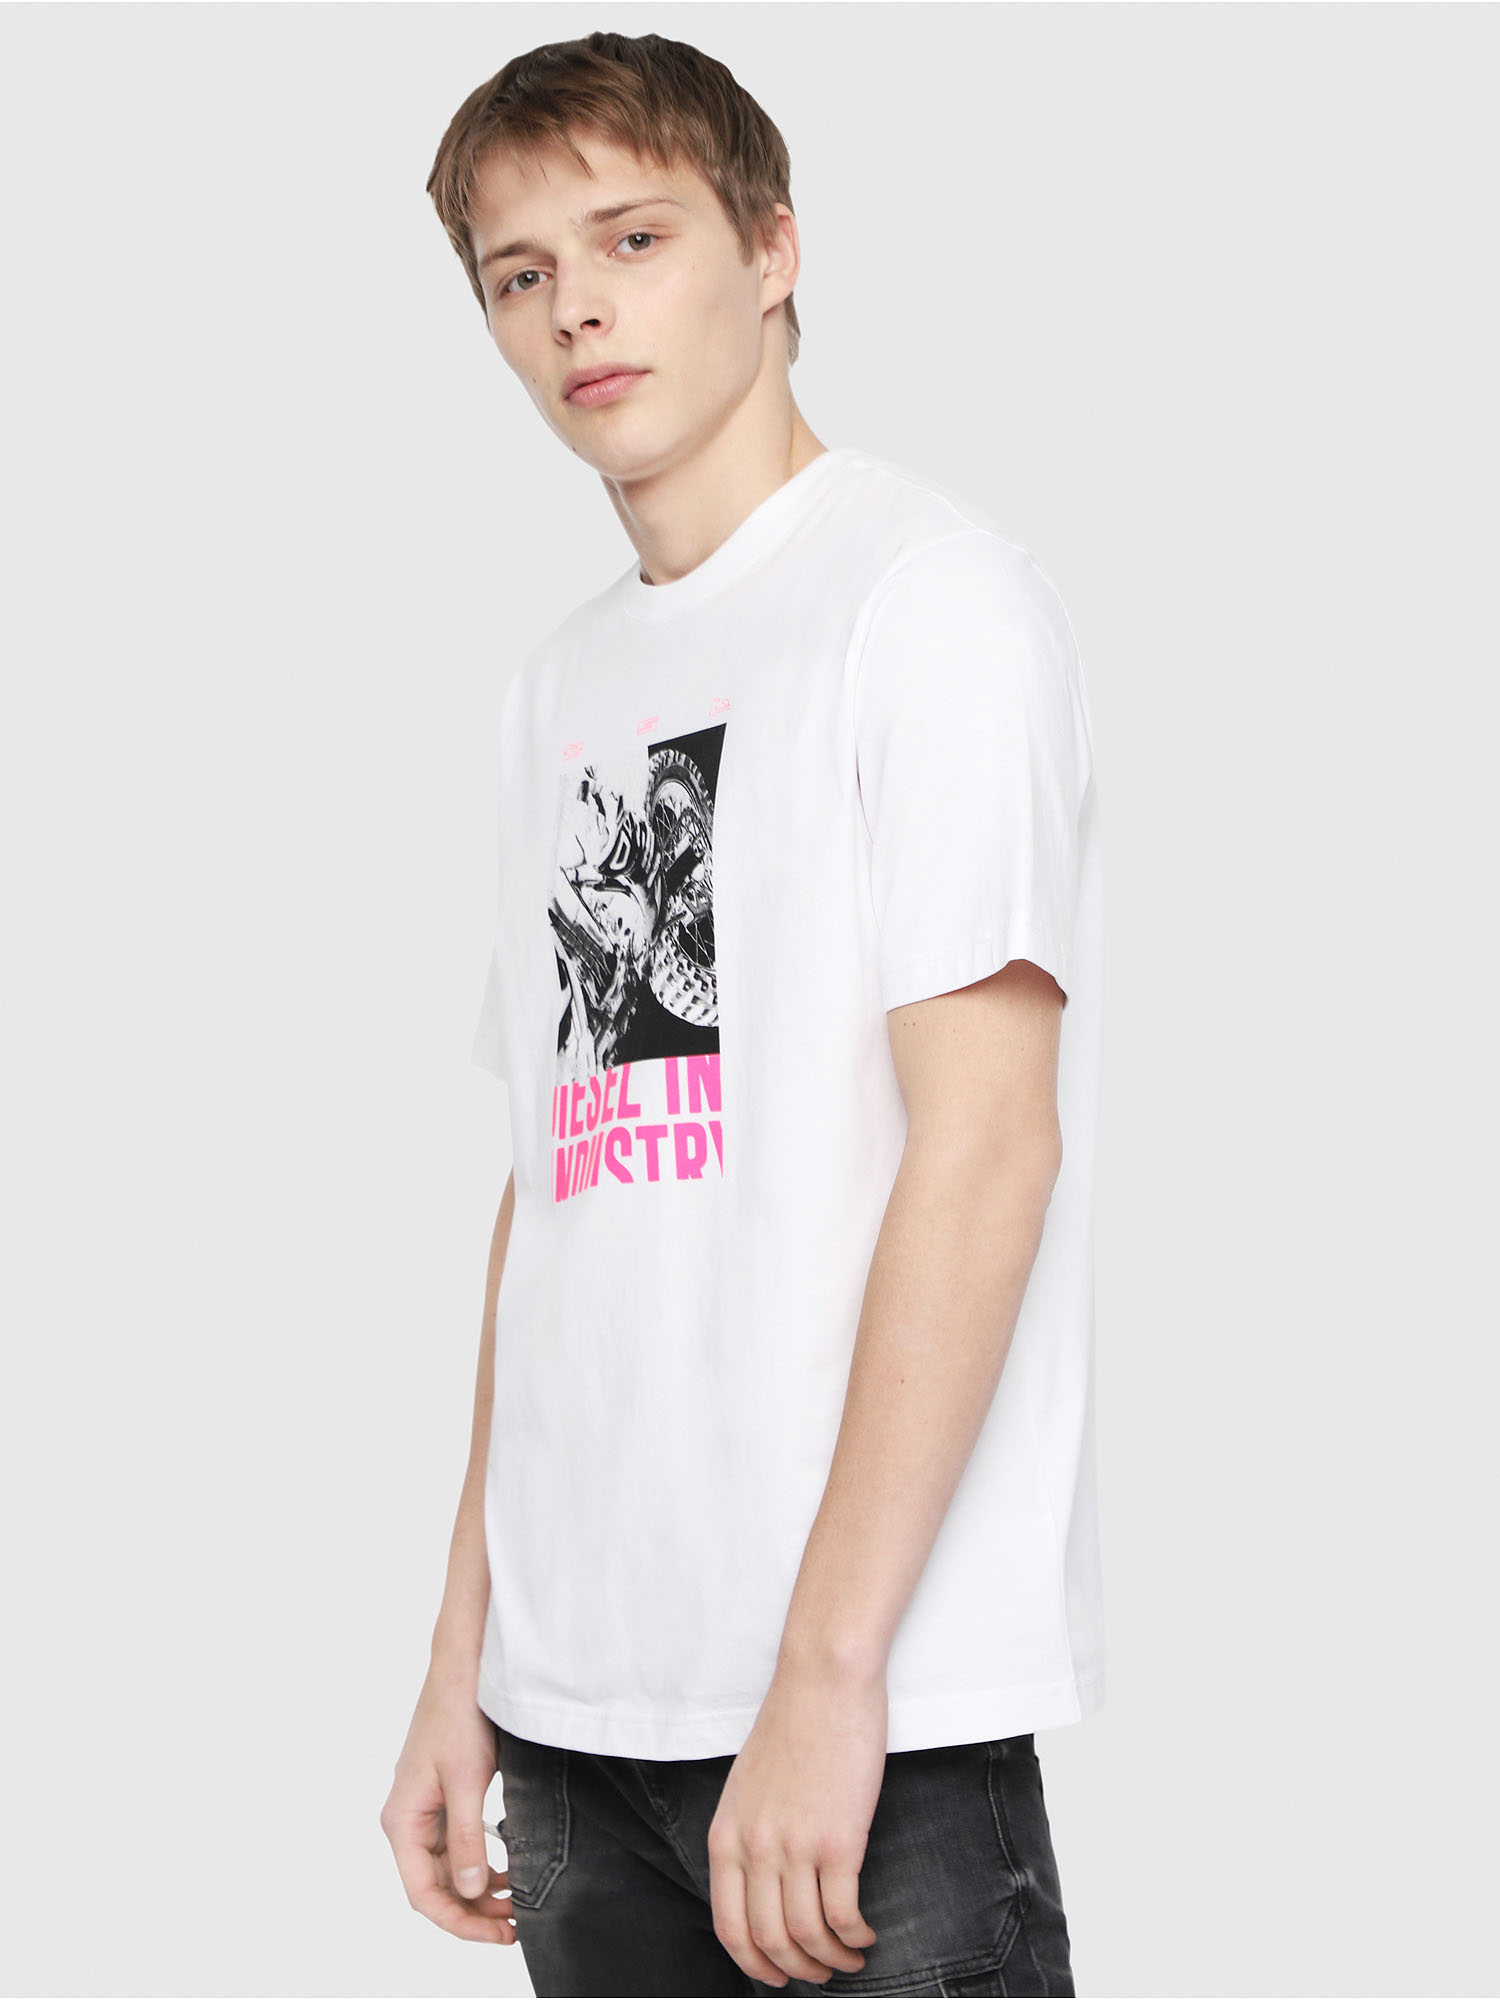 Diesel - T-JUST-Y3,  - T-Shirts - Image 1